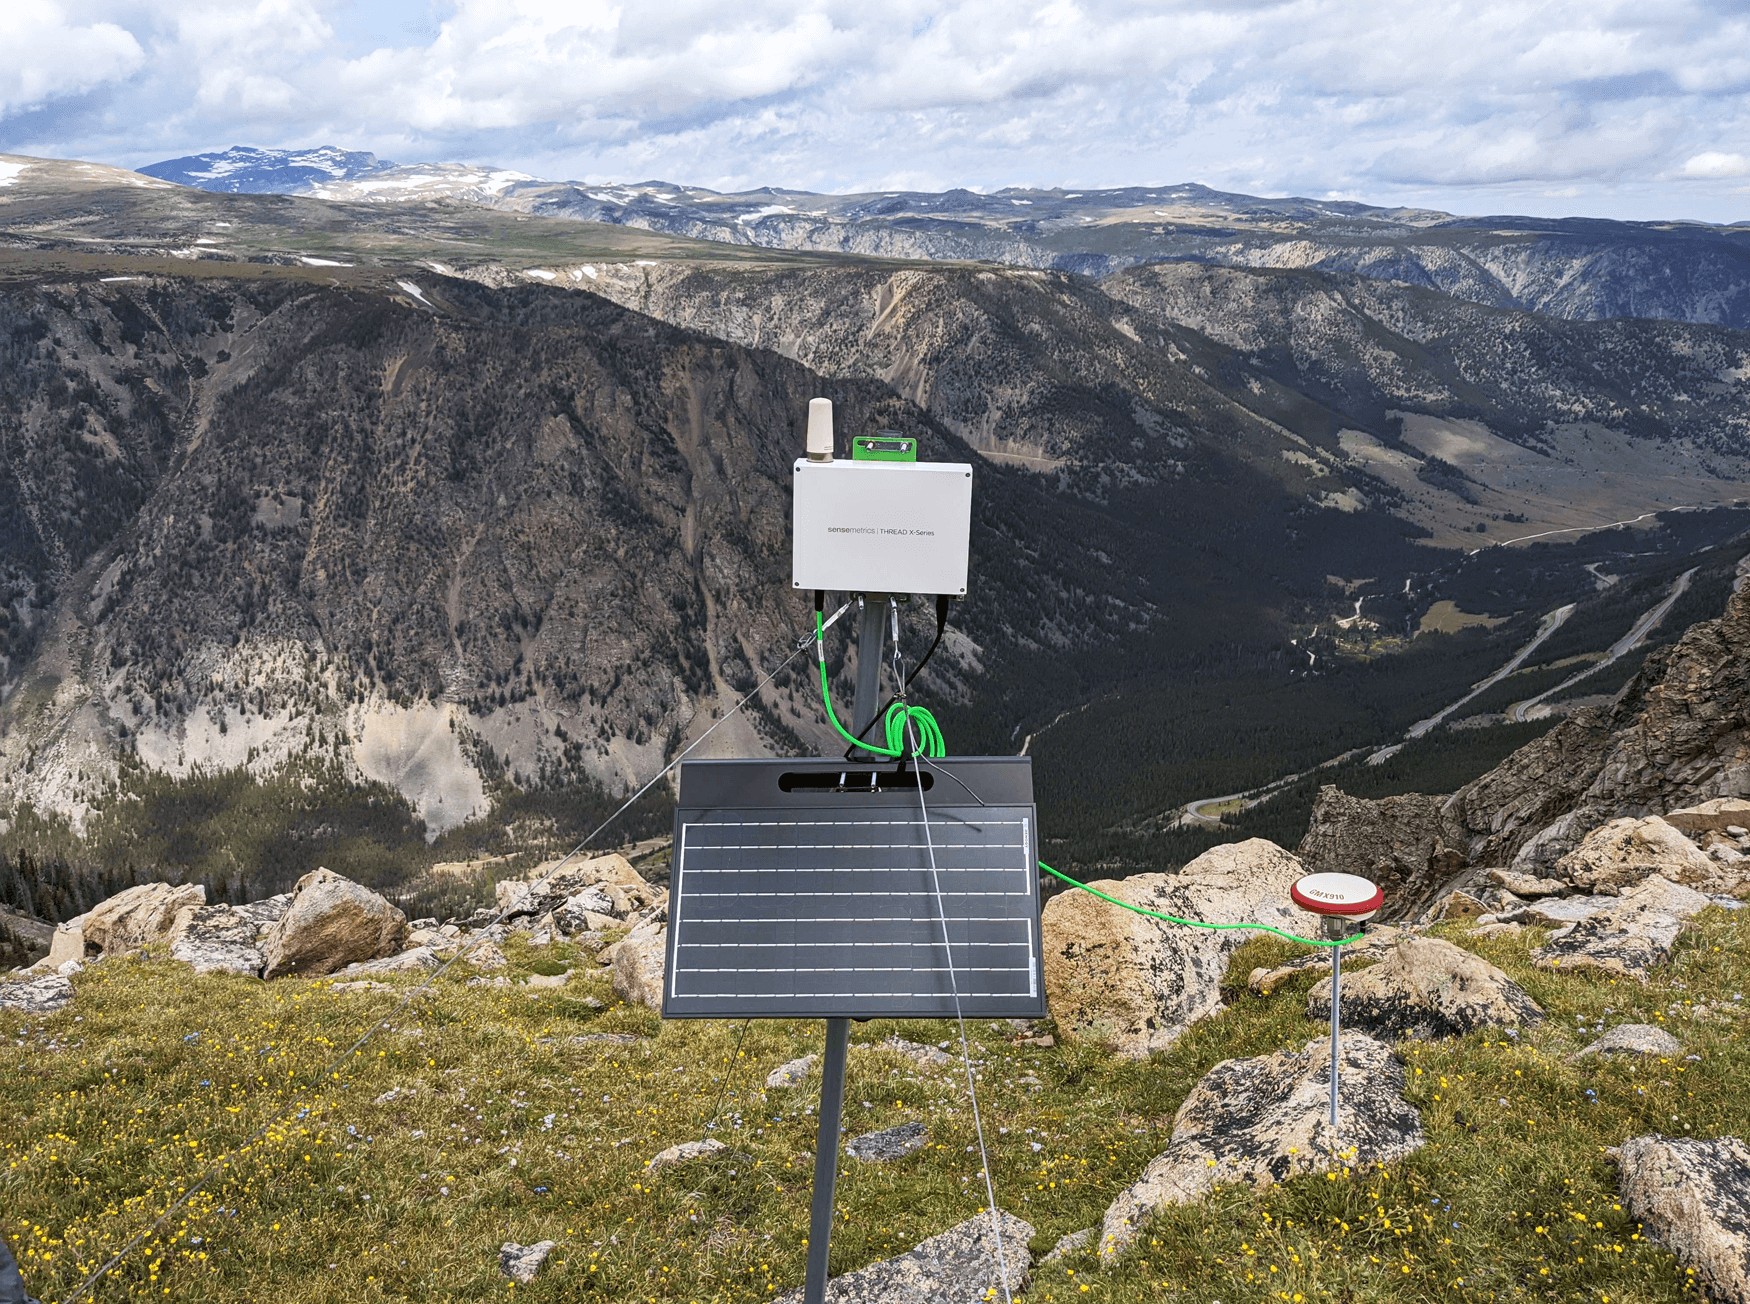 Landslide Monitoring of Beartooth Highway